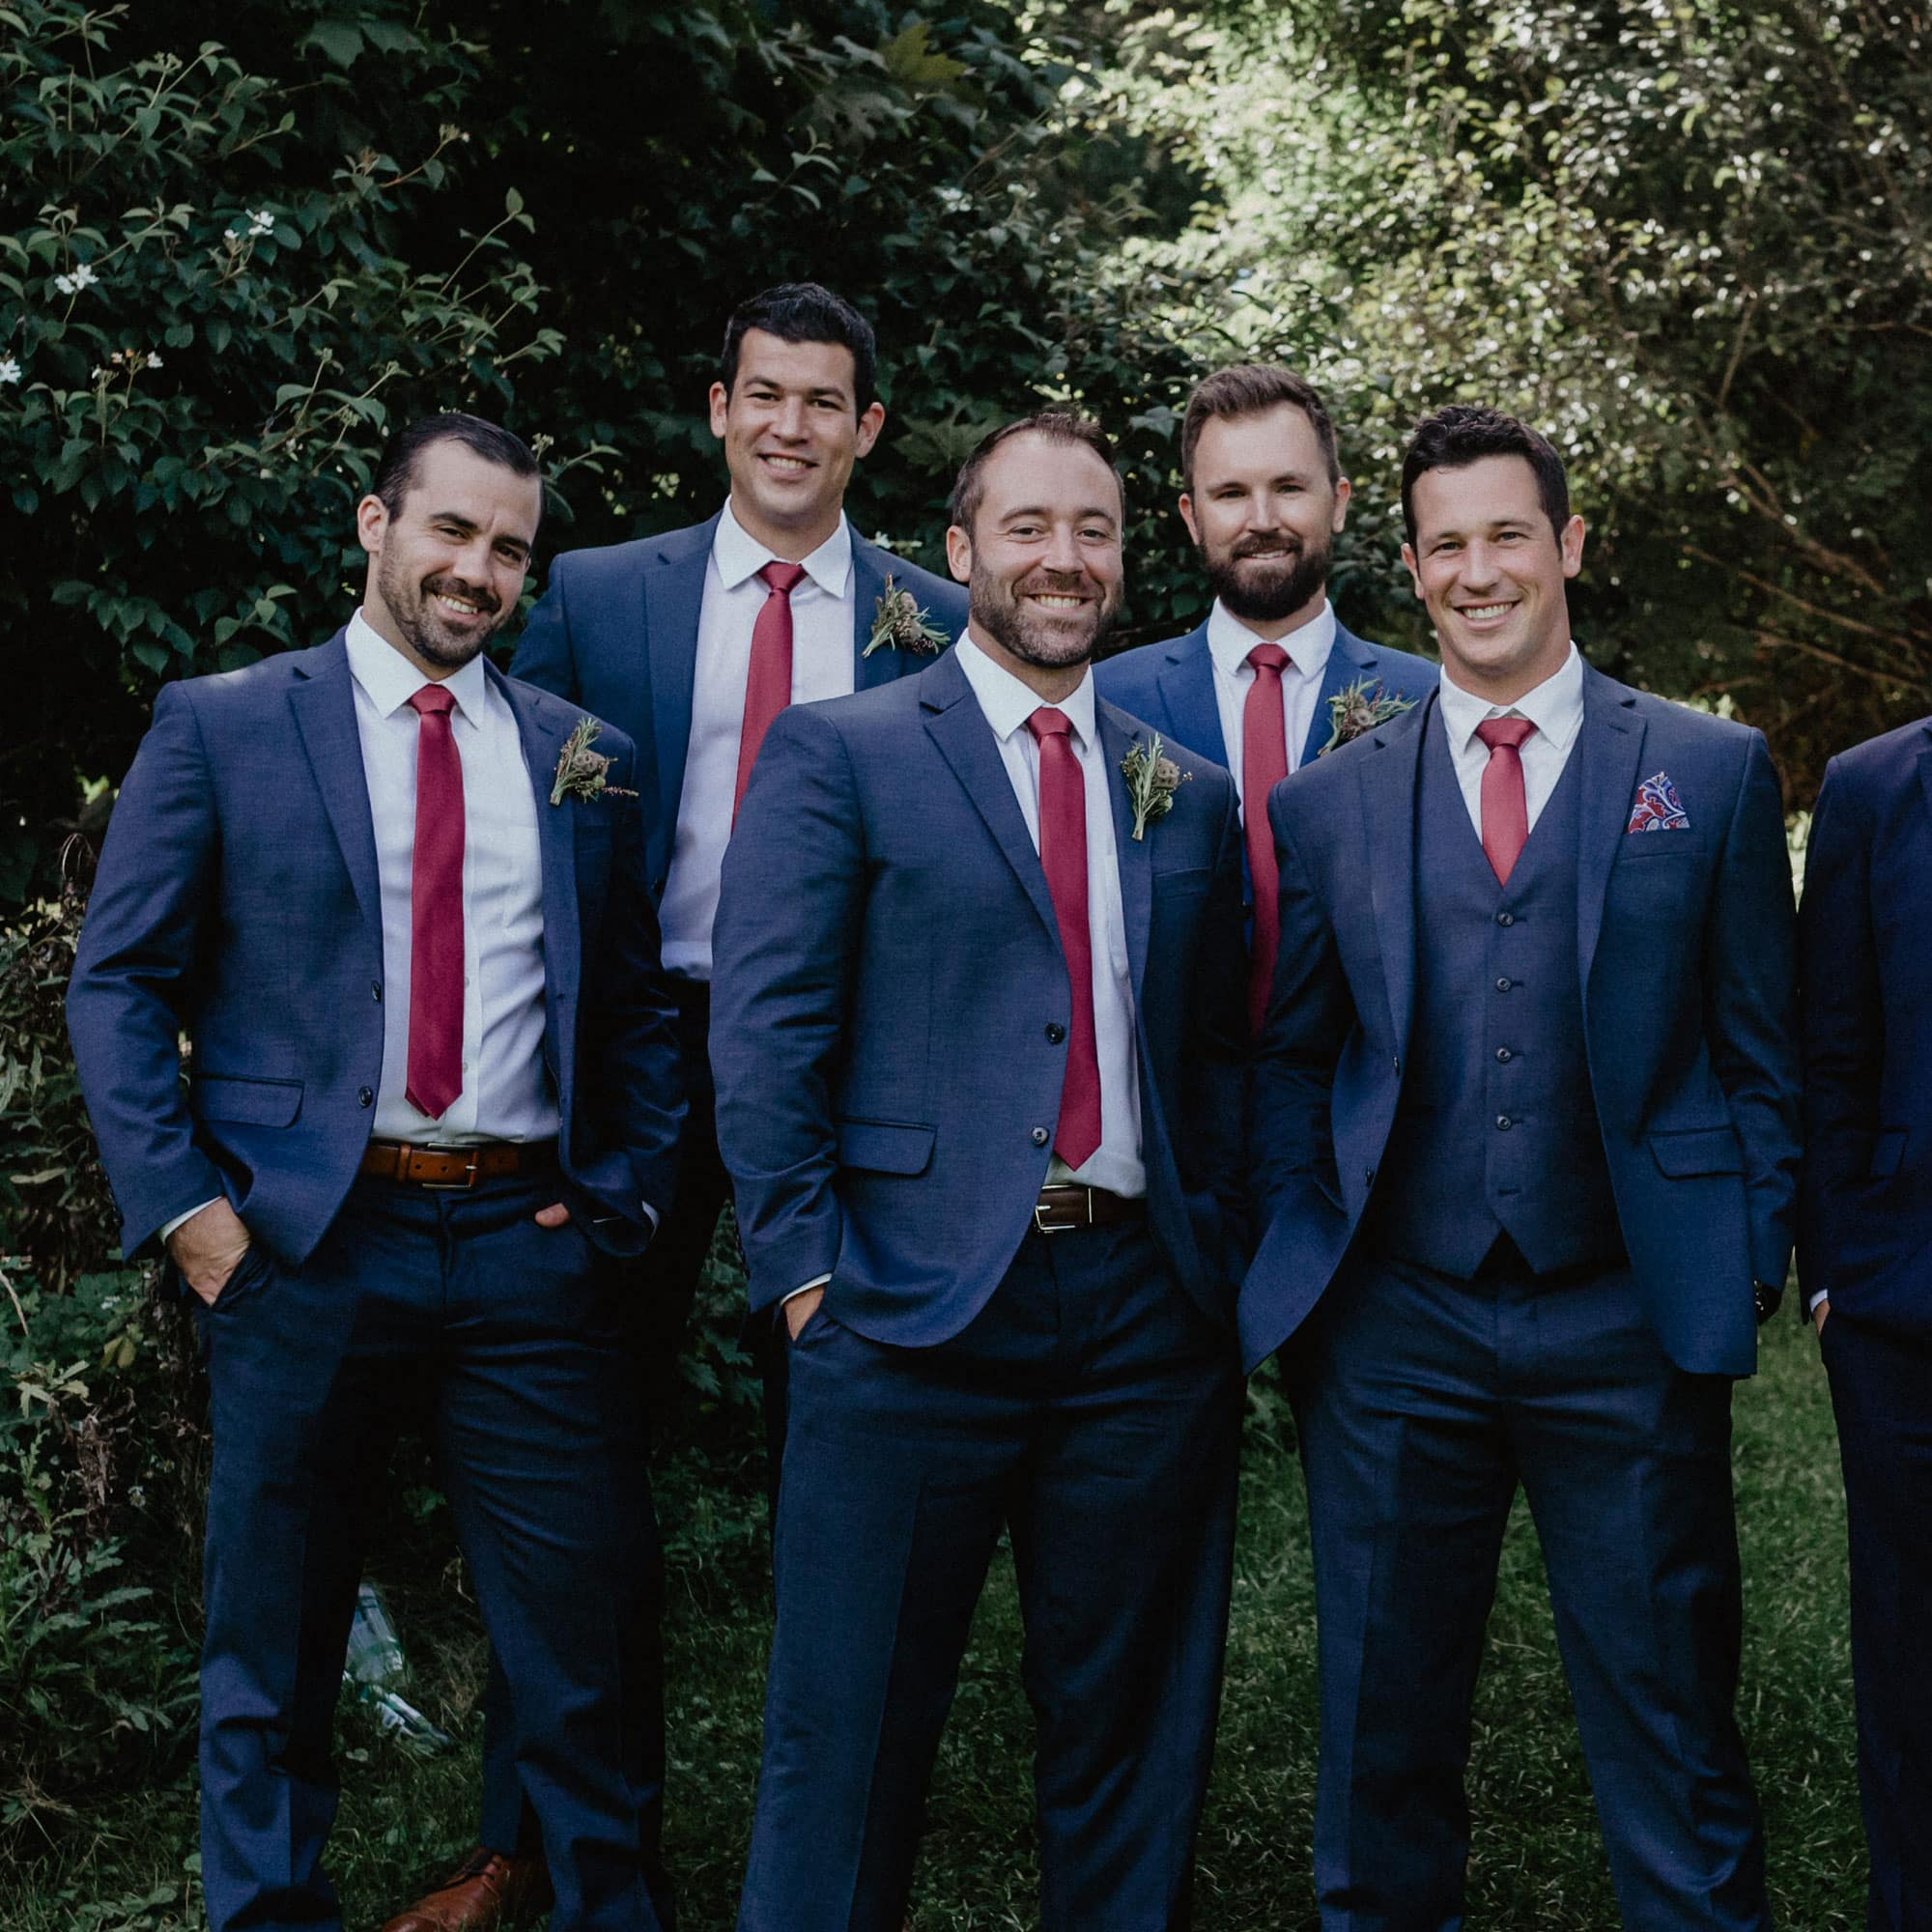 pockets of paris - exclusive discount on custom wedding suits for your groom and groomsmen